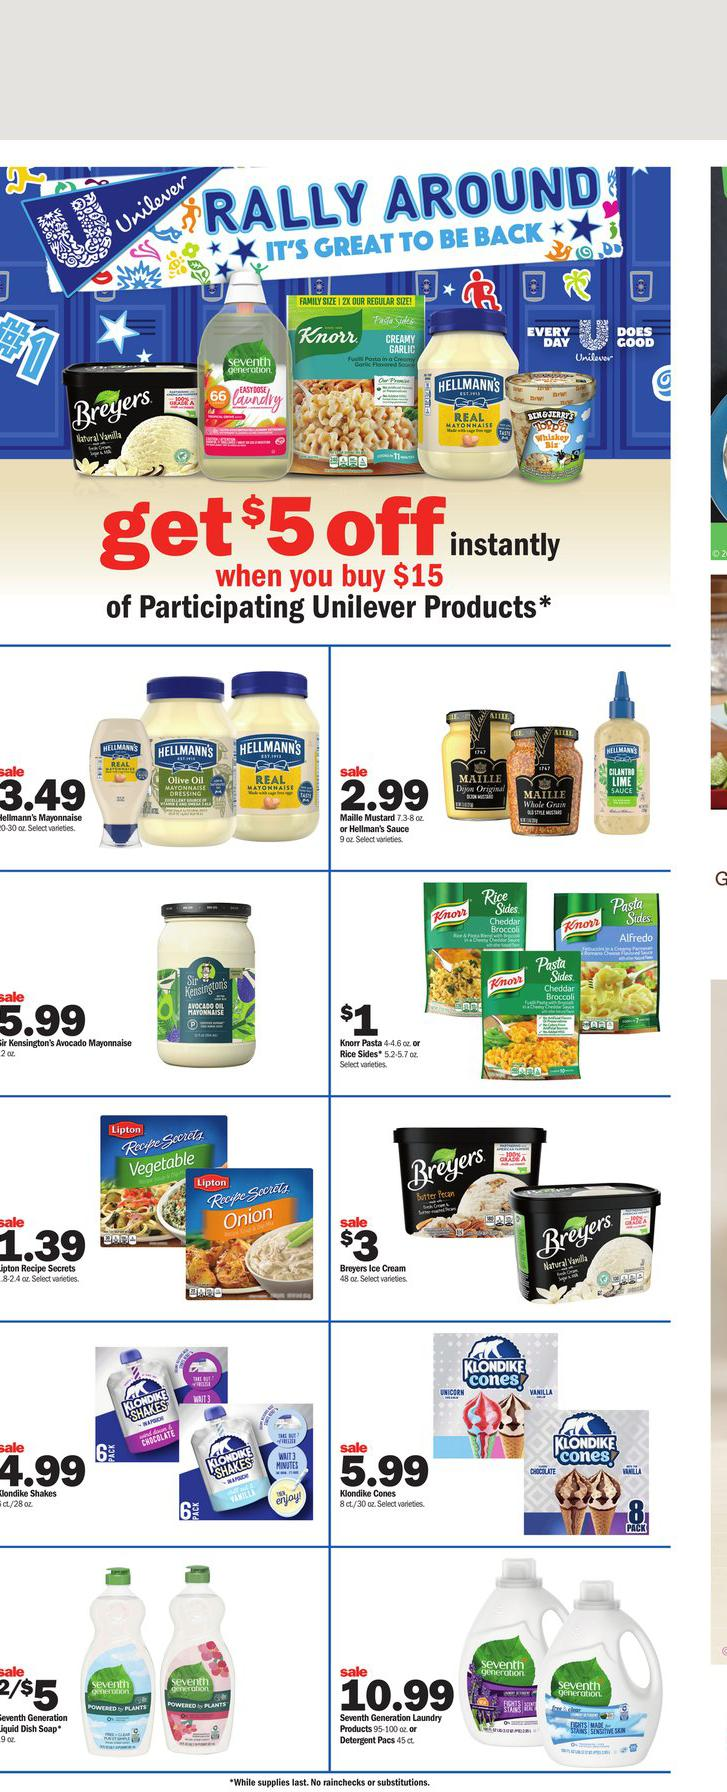 01.08.2021 Meijer ad 7. page